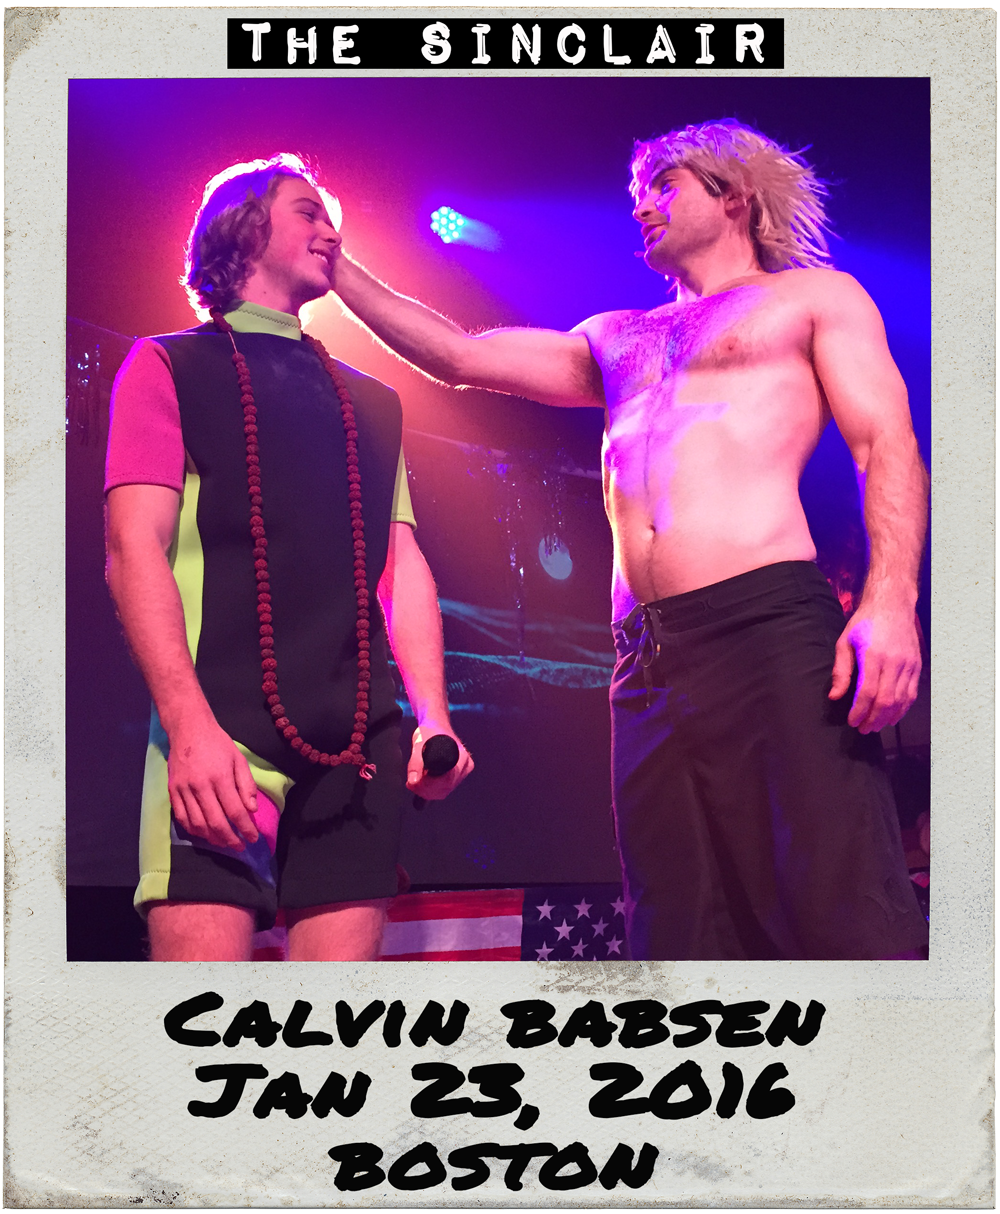 01_23_16_Calvin-Babsen_Boston.png